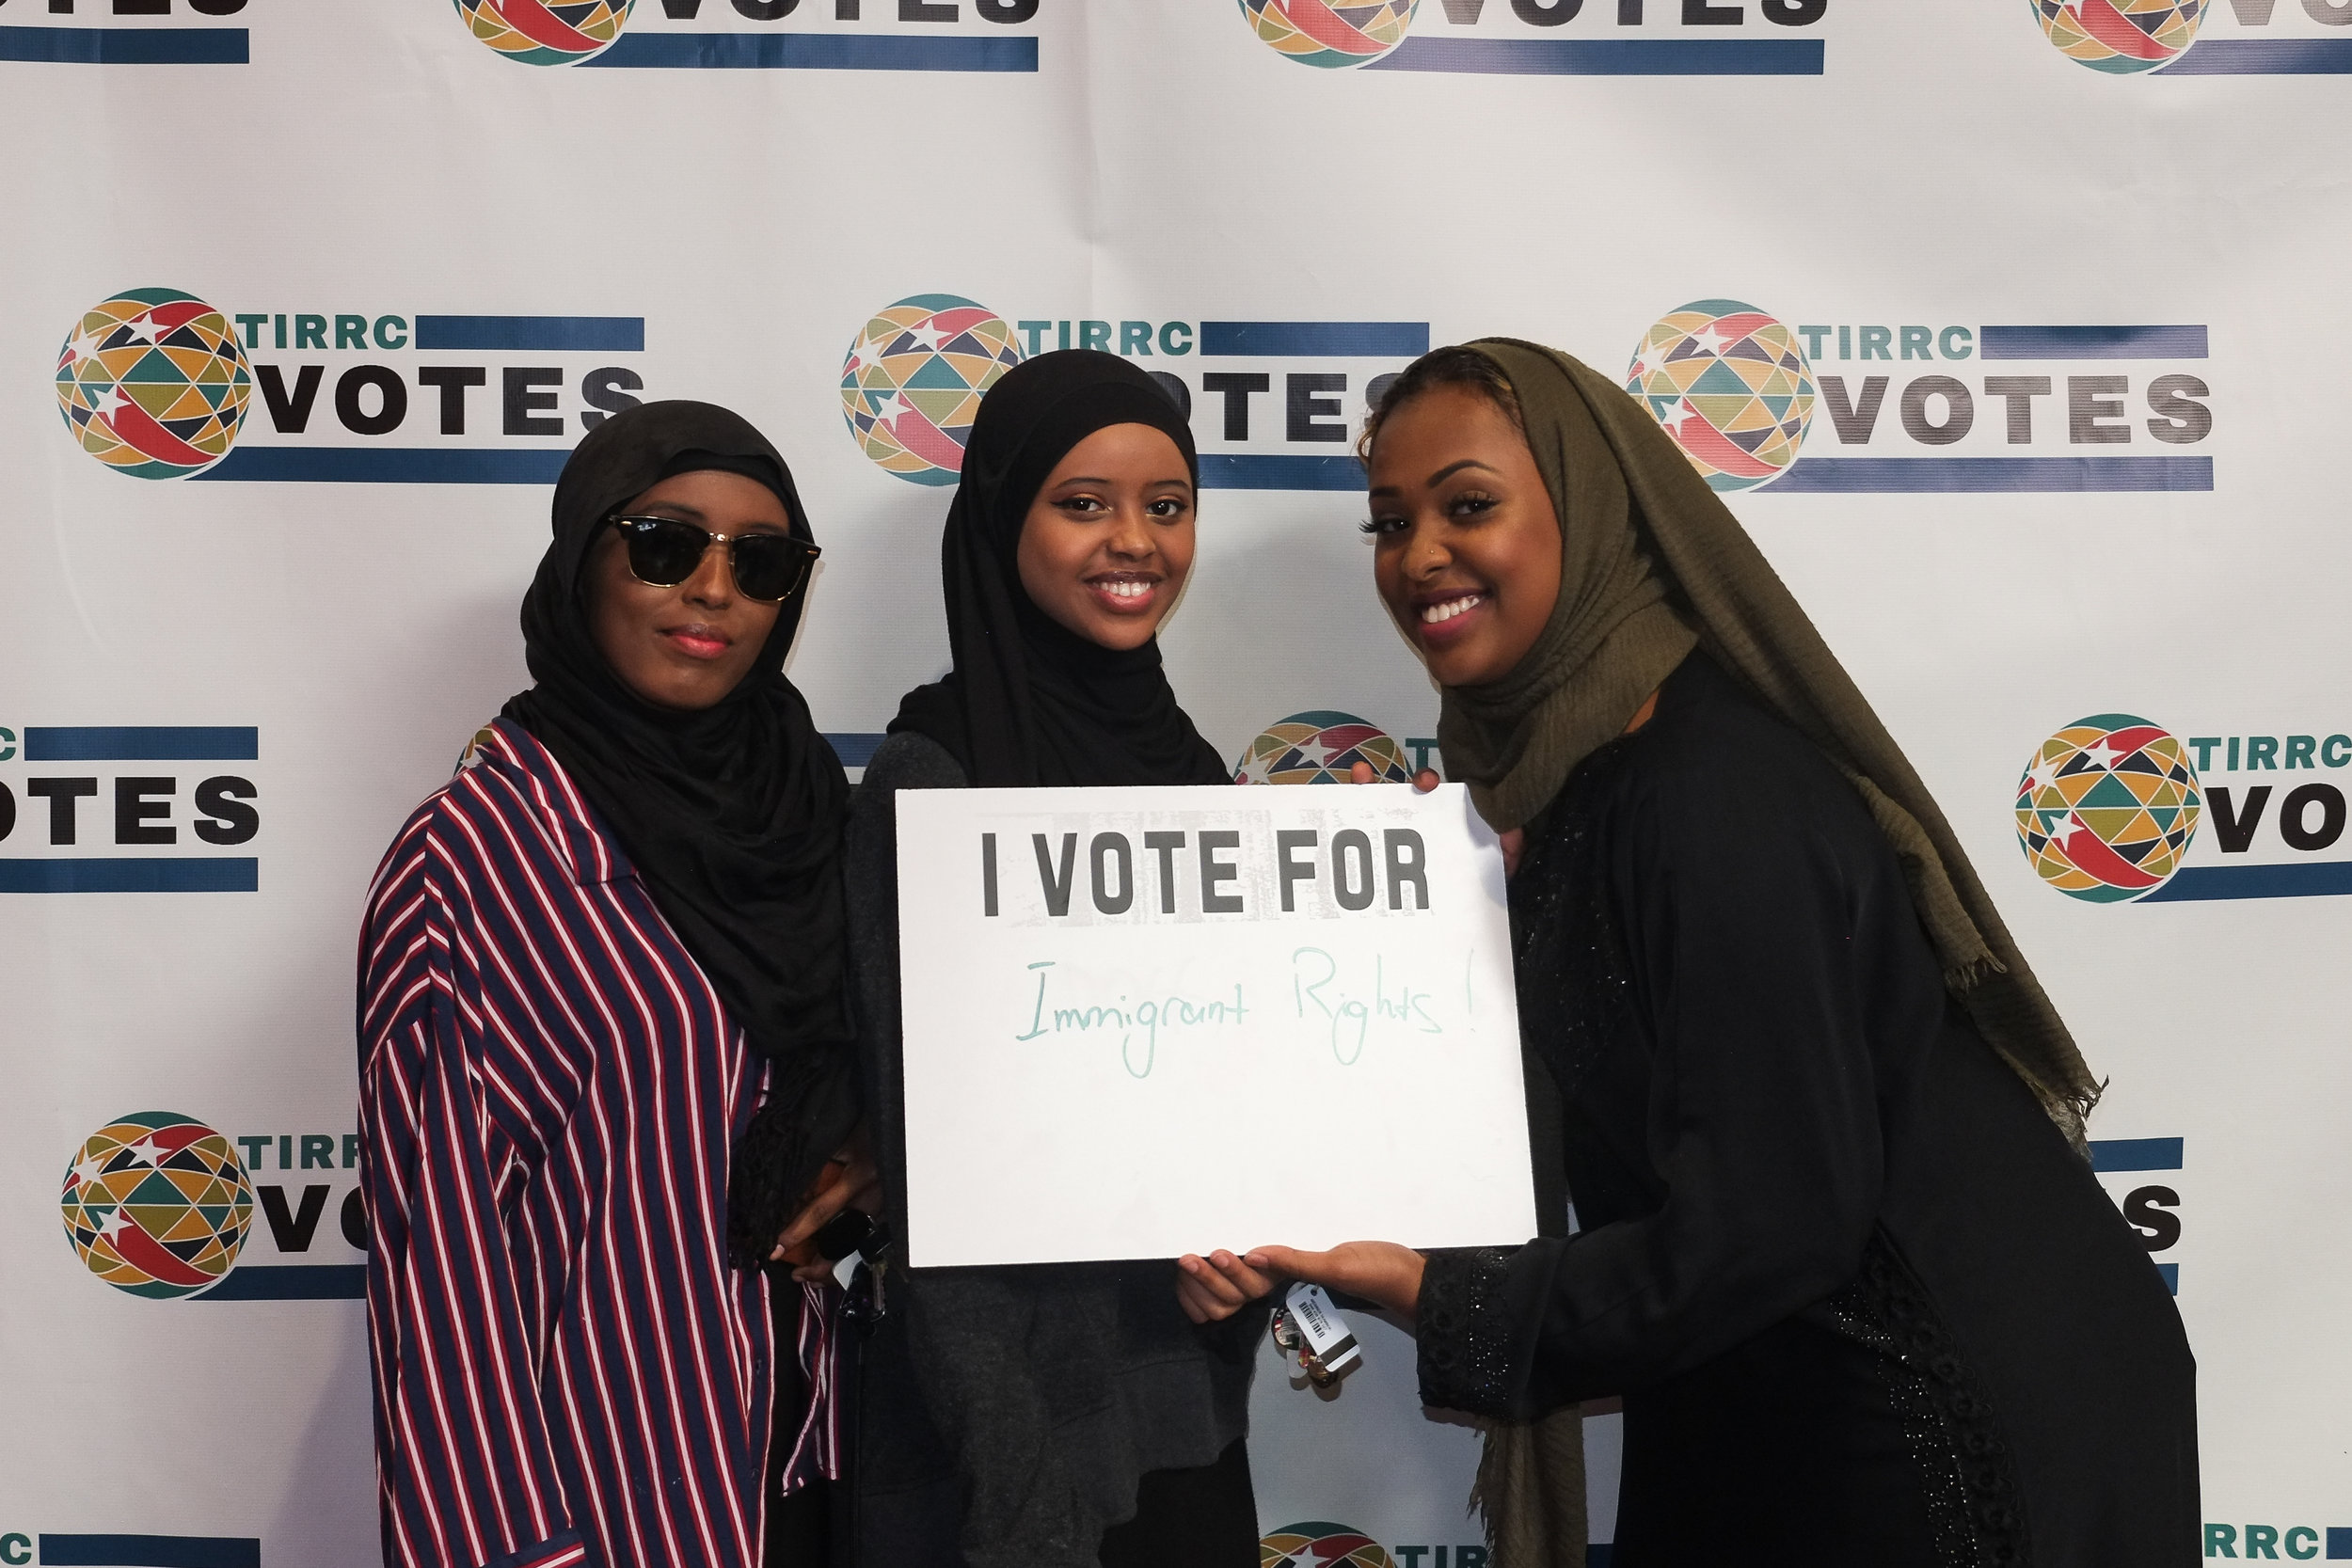 TIRRCVotes-PhotoBooth-11.jpg